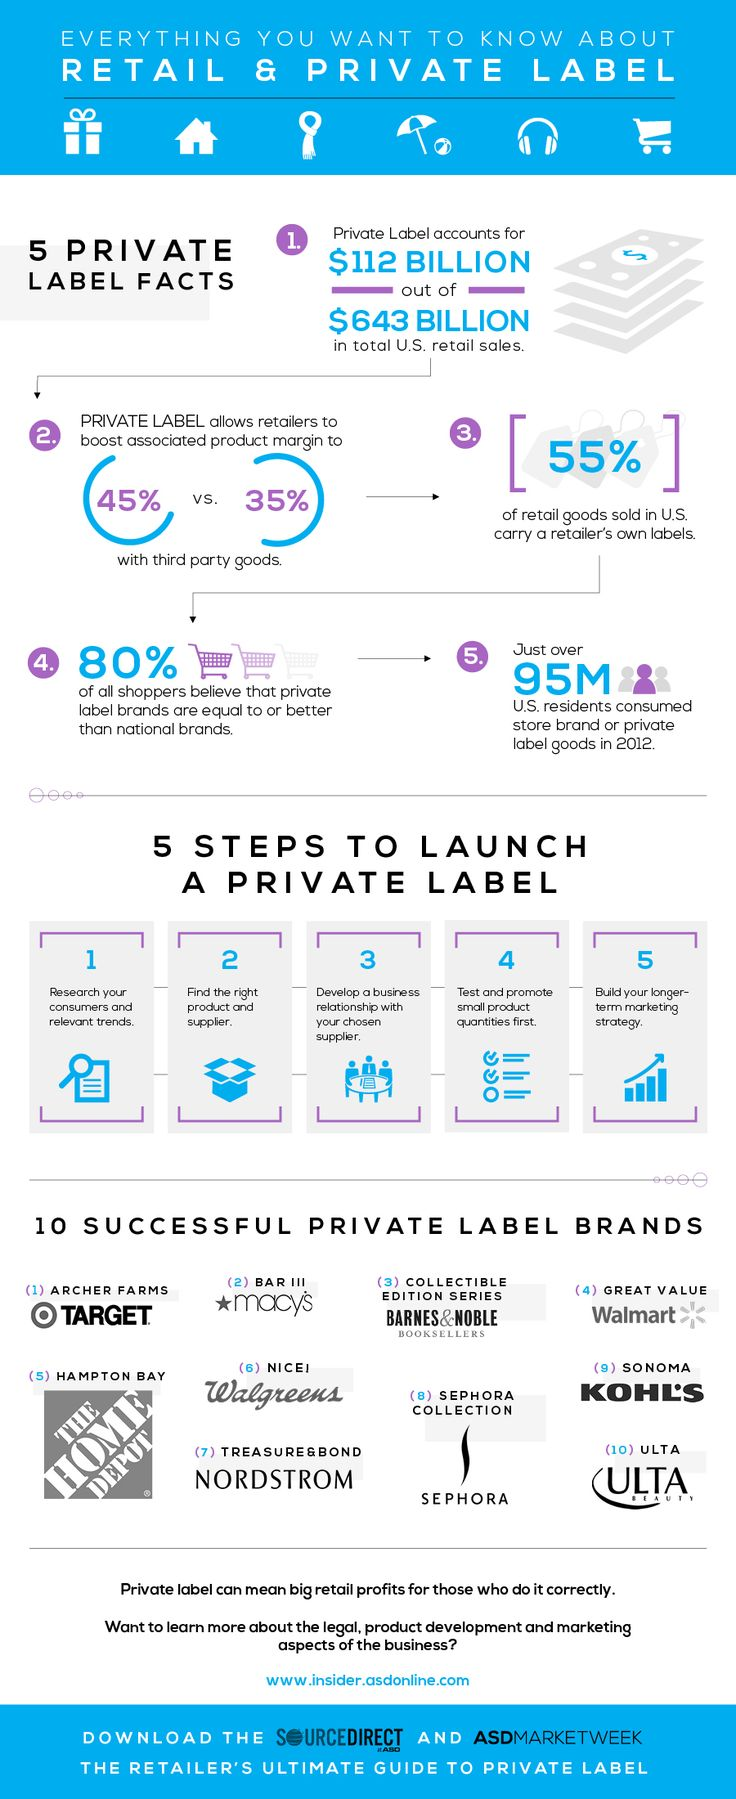 A great resource for small businesses to be successful at private label products. Discusses how to launch food, cosmetics, food, vitamins and more. Great information from companies selling private label goods online, through Amazon and eBay and more